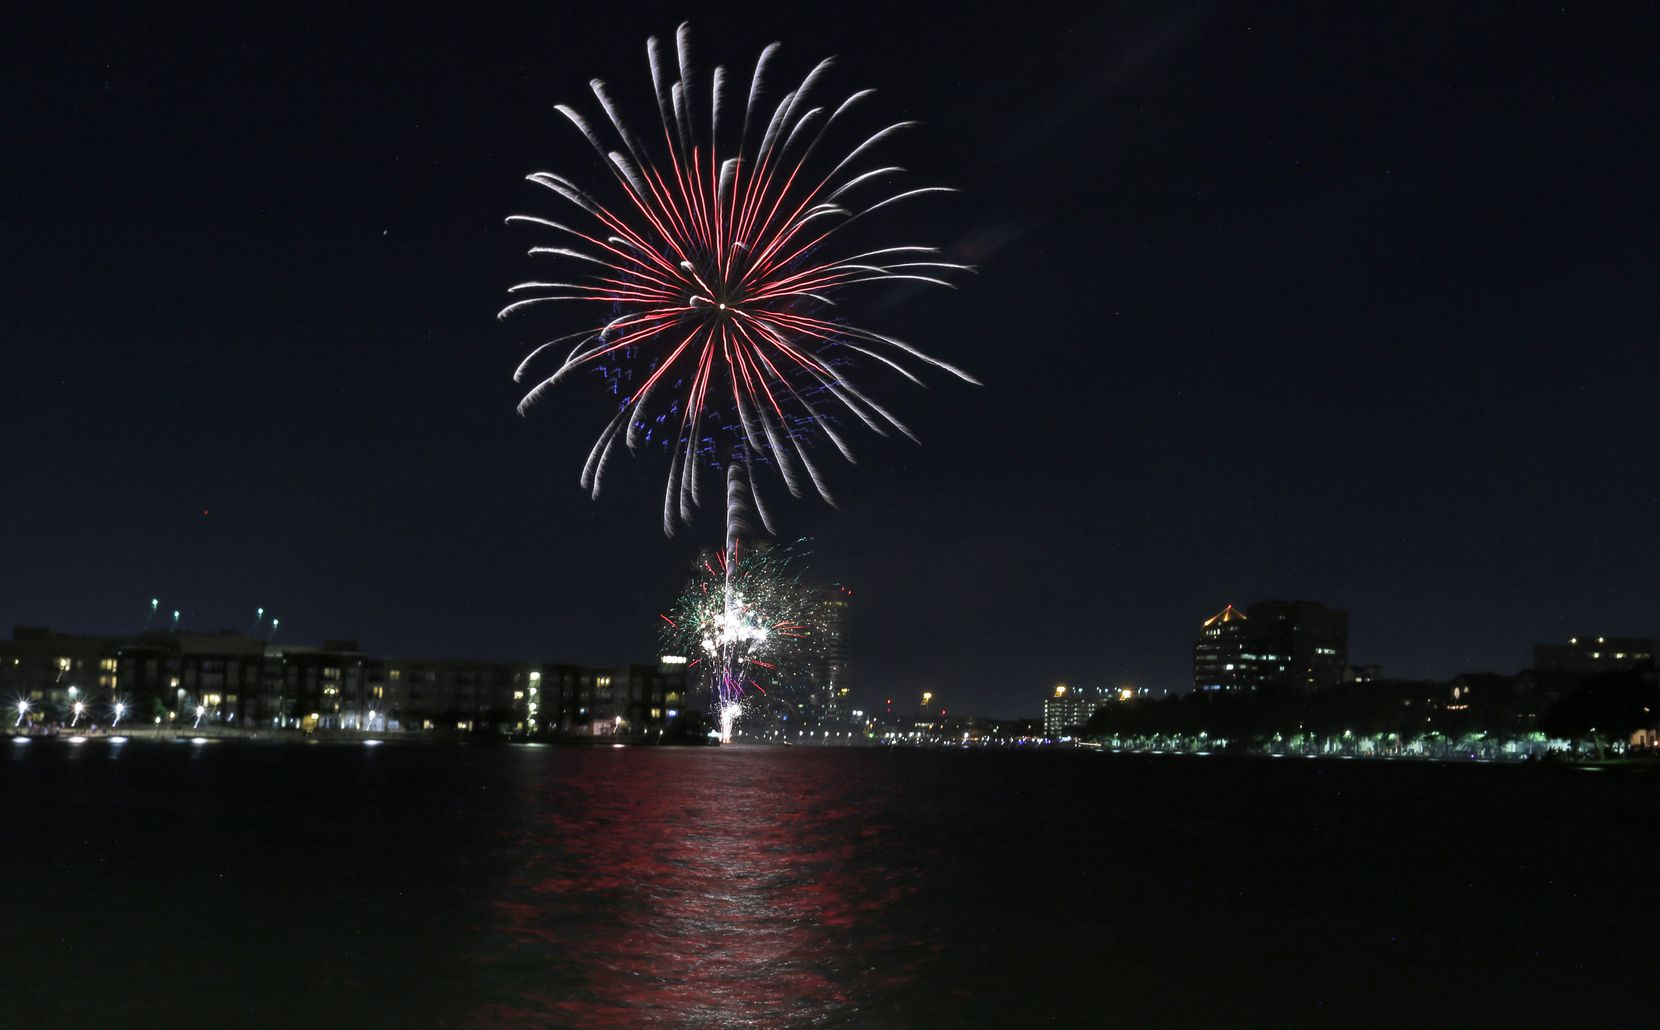 Fireworks light up the sky over Irving in 2018, with the dazzling effects reflected in Lake Carolyn. This year's July 4 festivities, at Levy Event Plaza, include music by Alex Aguilar and Downtown Fever followed by fireworks.